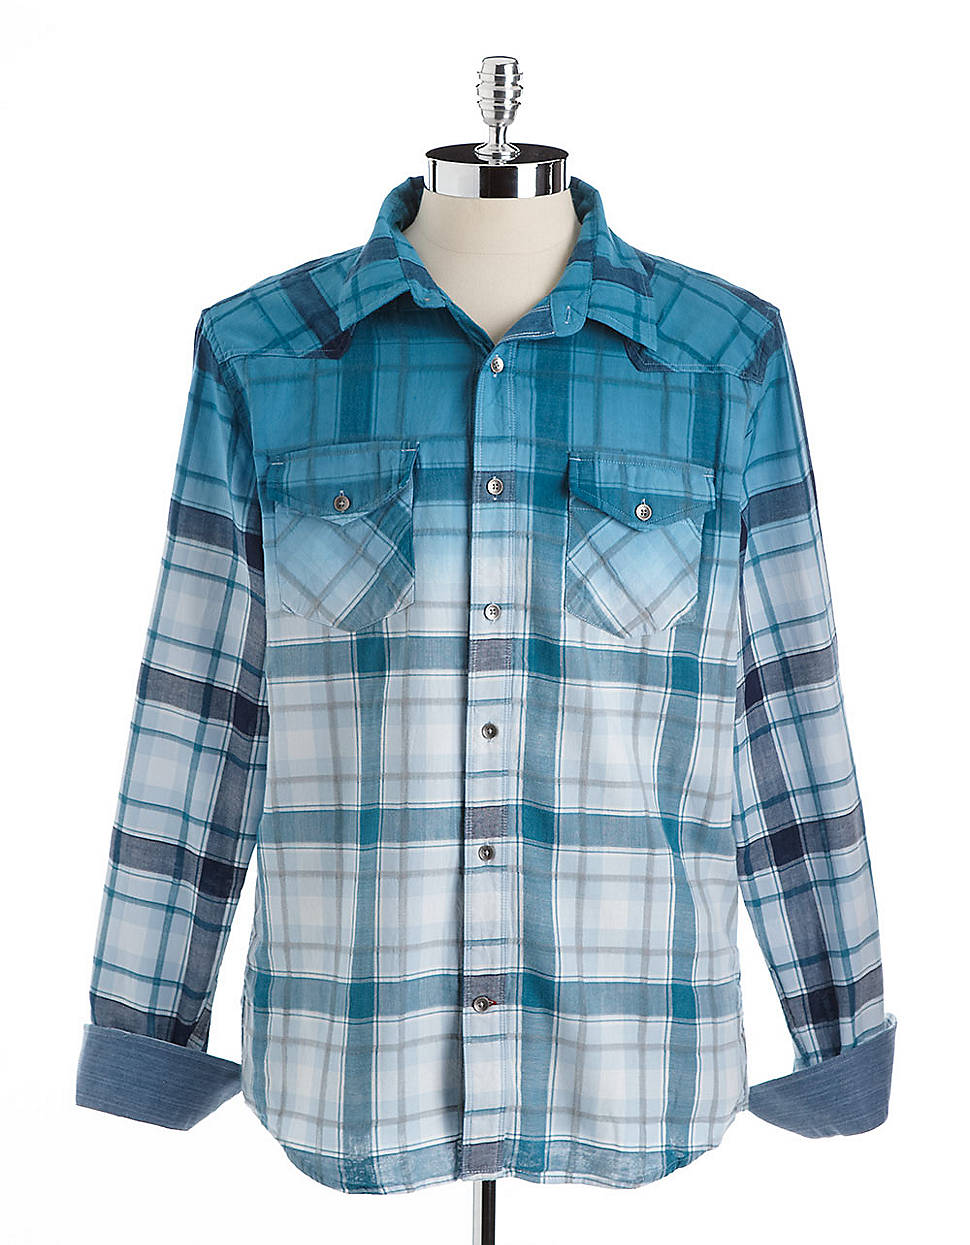 Guess Plaid Dip Dye Flannel Shirt In White For Men Blue